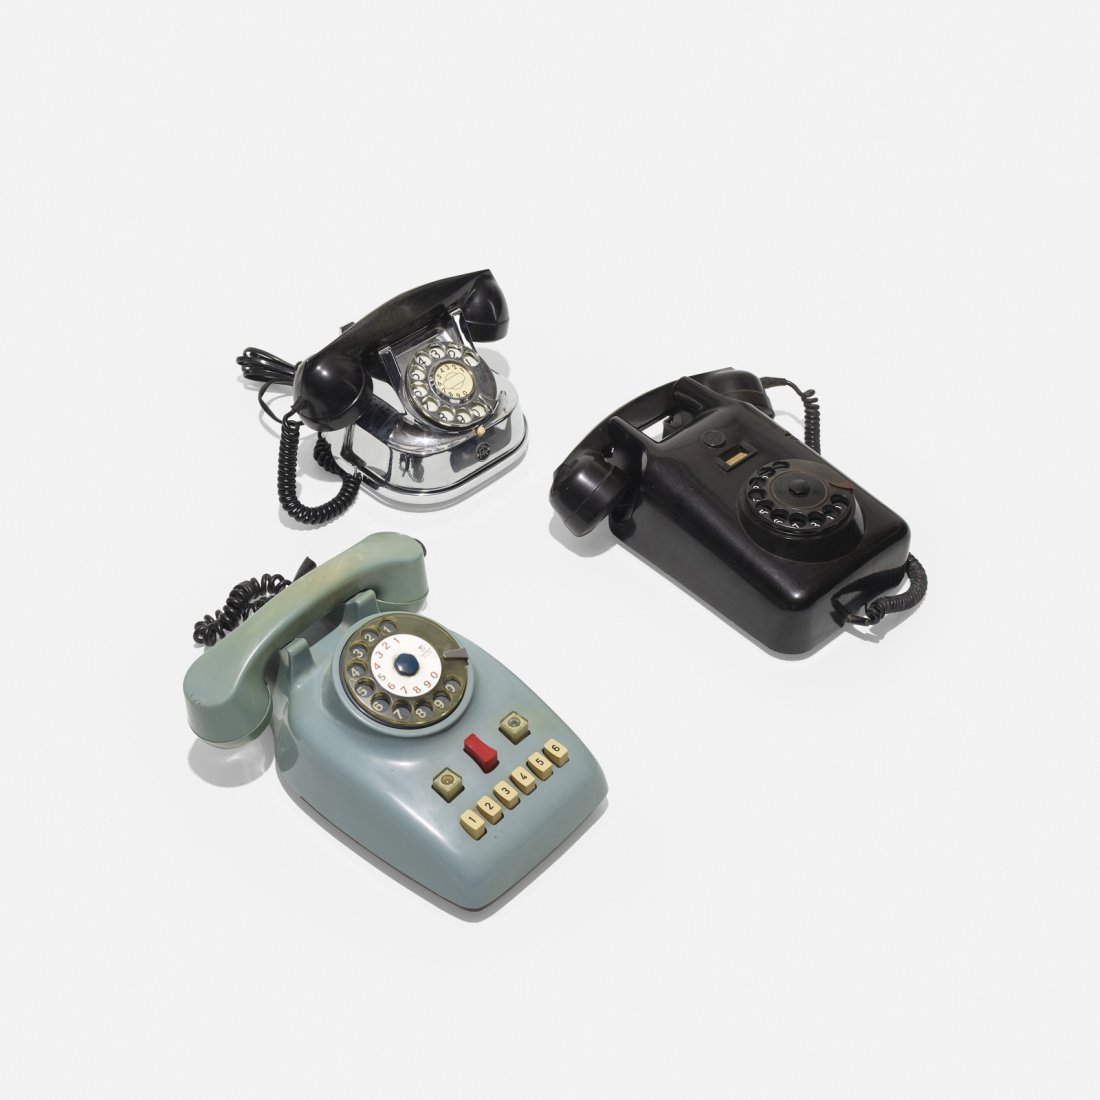 Various Artists, collection of three telephones